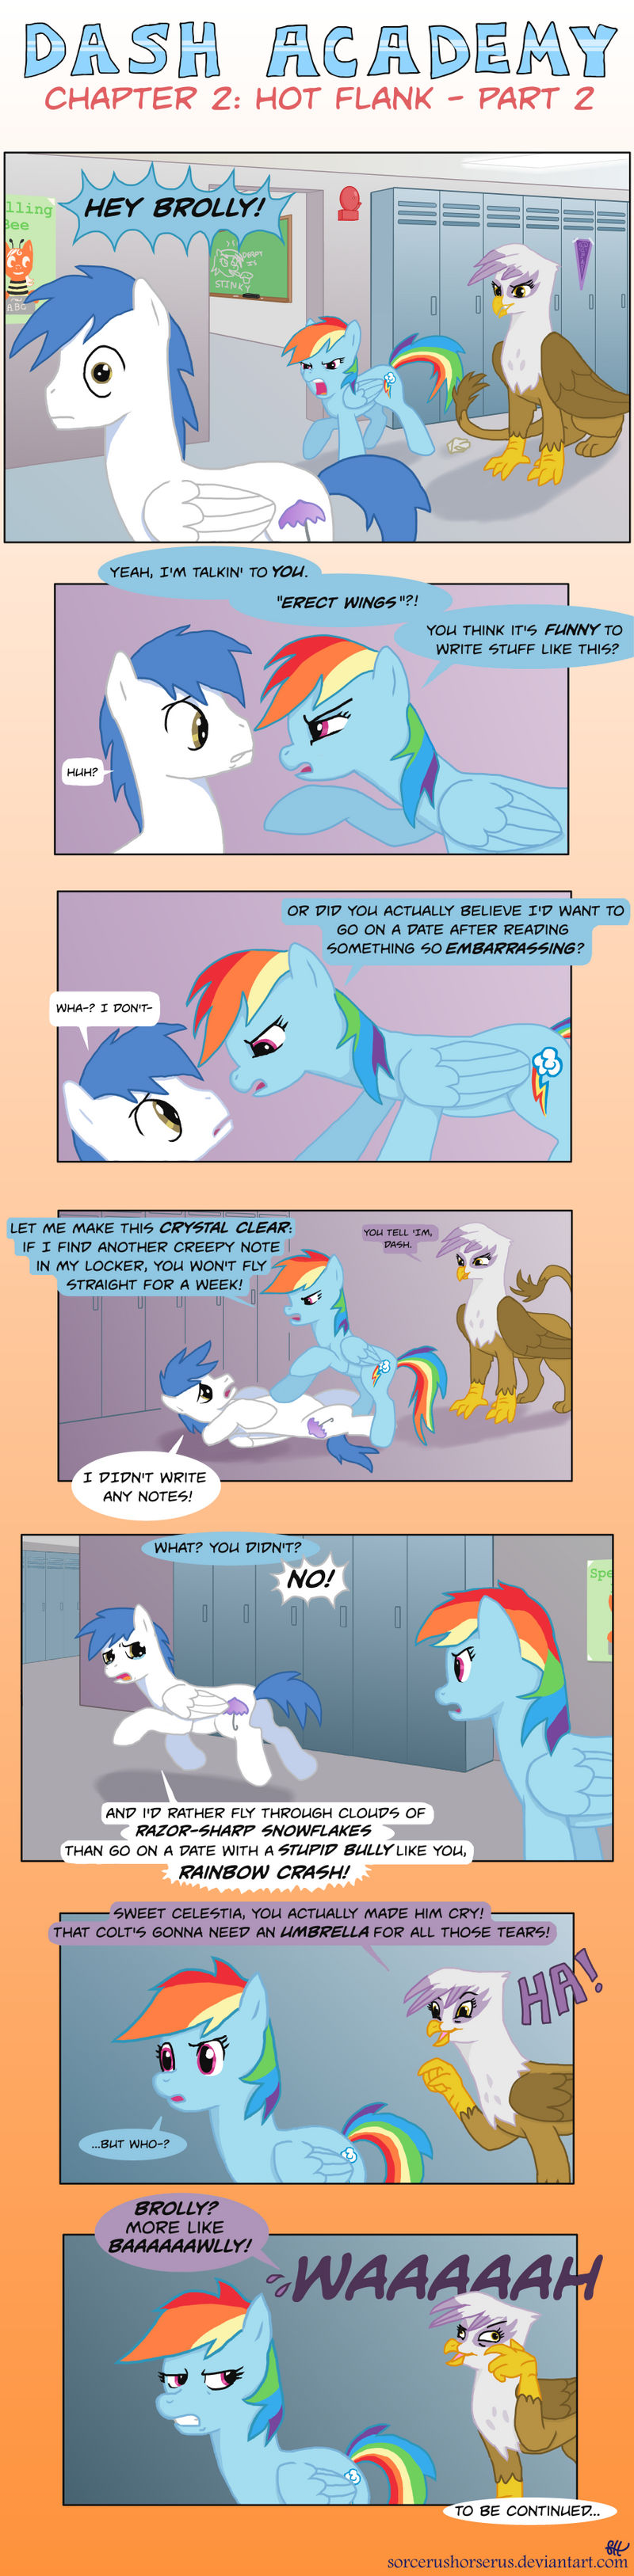 Dash Academy Chapter 2 - Hot Flank #2 by SorcerusHorserus on